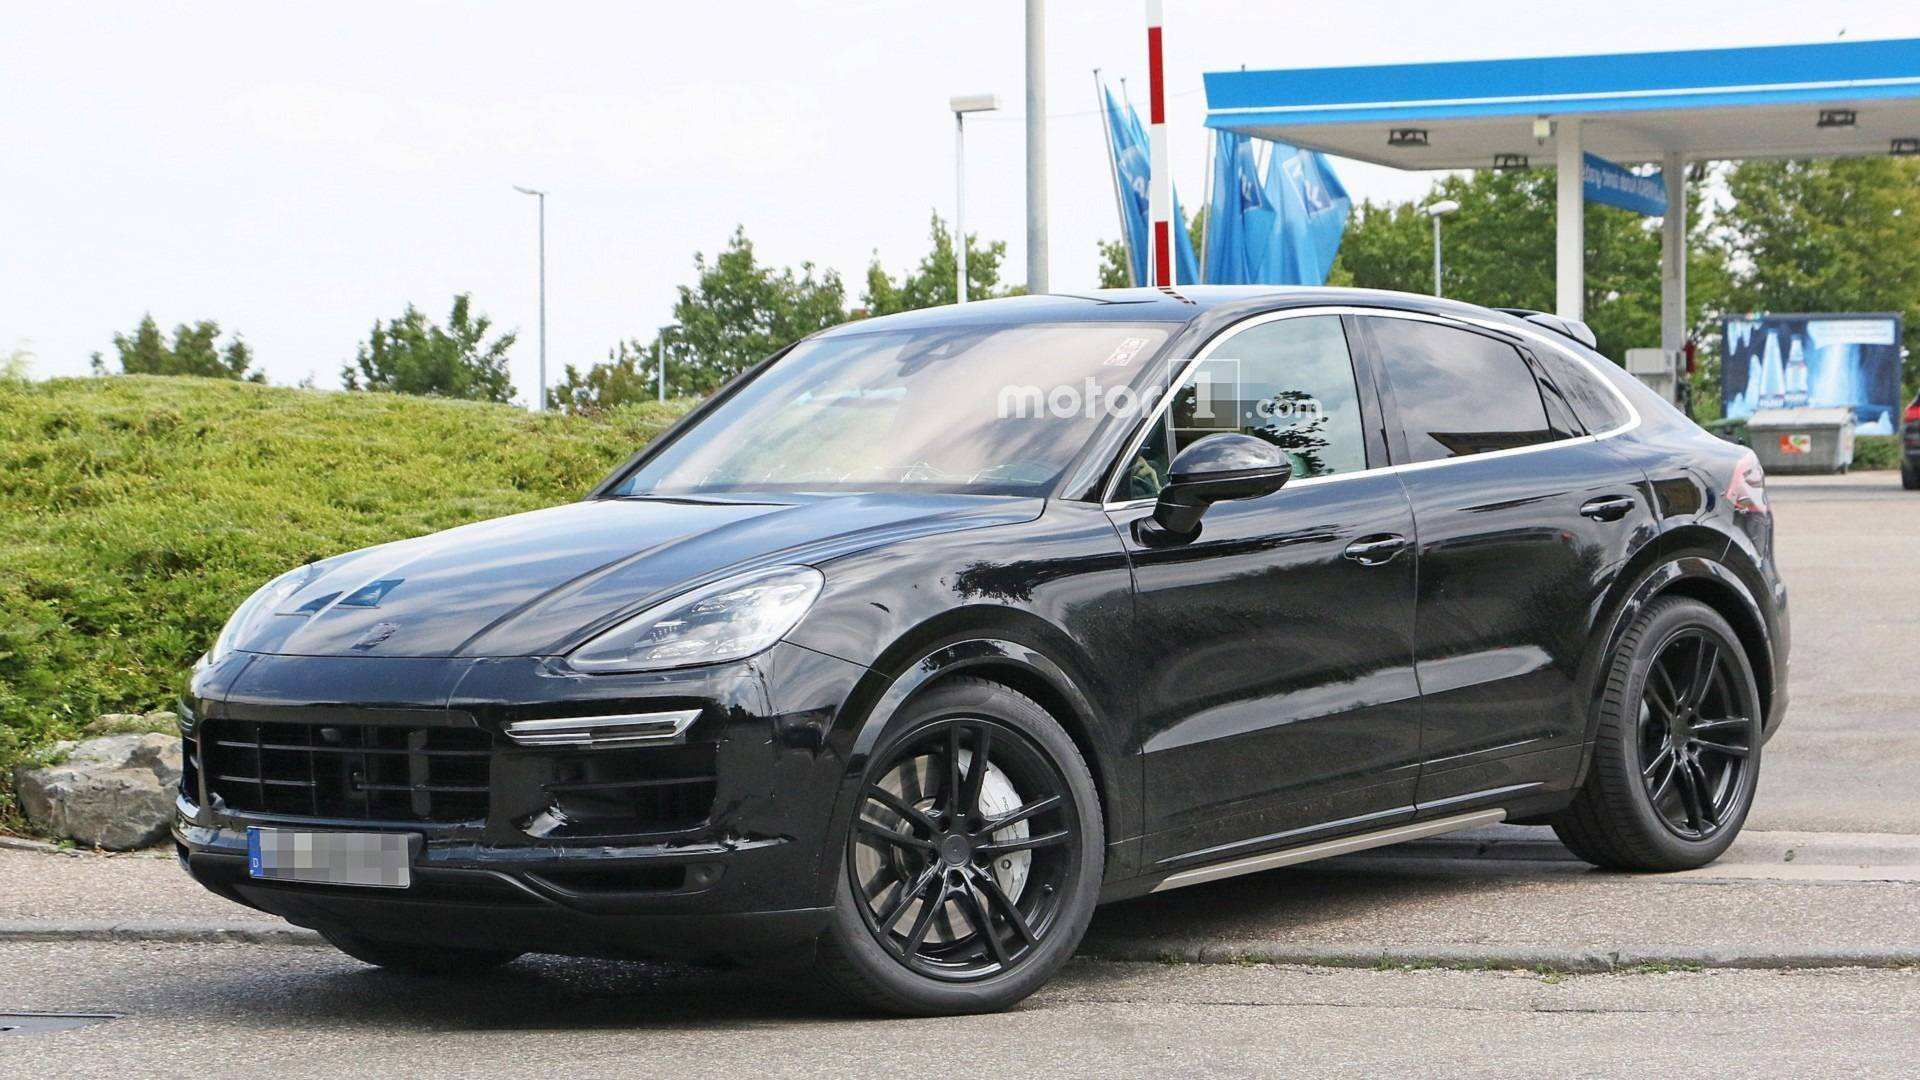 13 Gallery of 2020 Porsche Cayenne Turbo S Images by 2020 Porsche Cayenne Turbo S